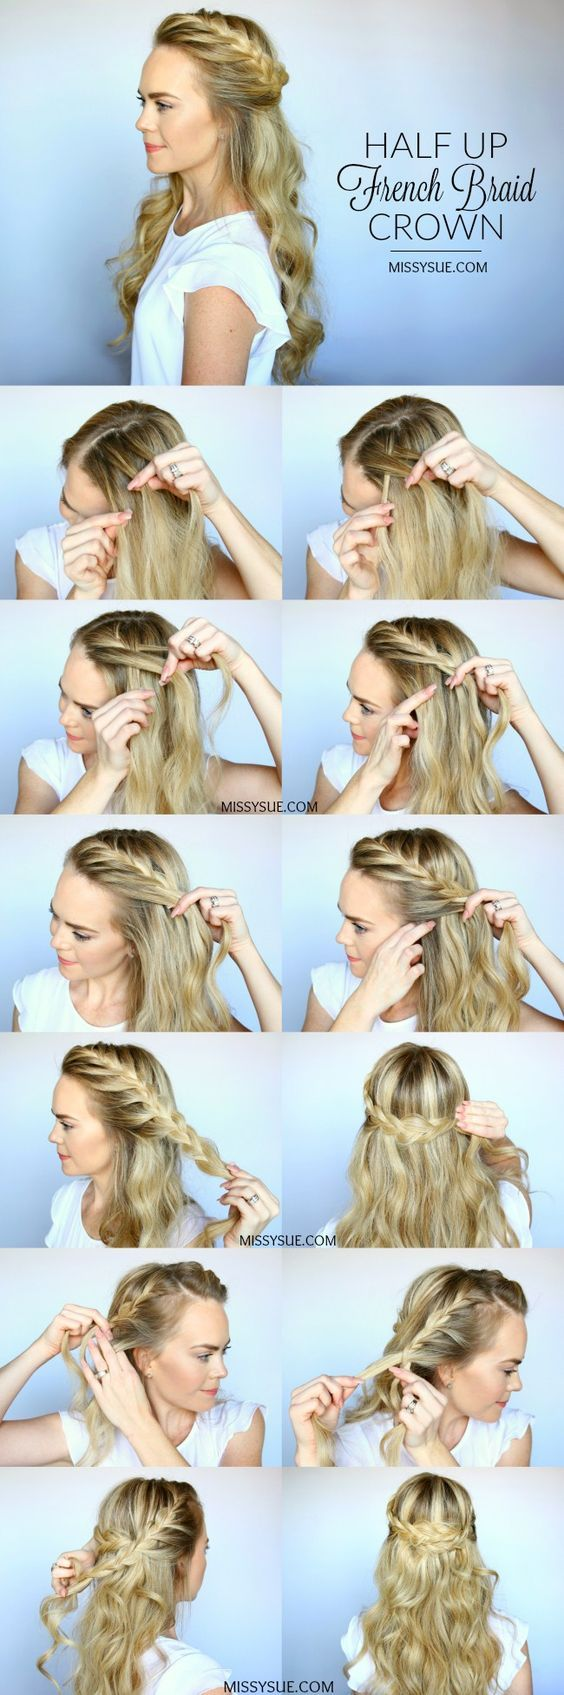 easy braided hairstyle tutorials that anyone can master hair